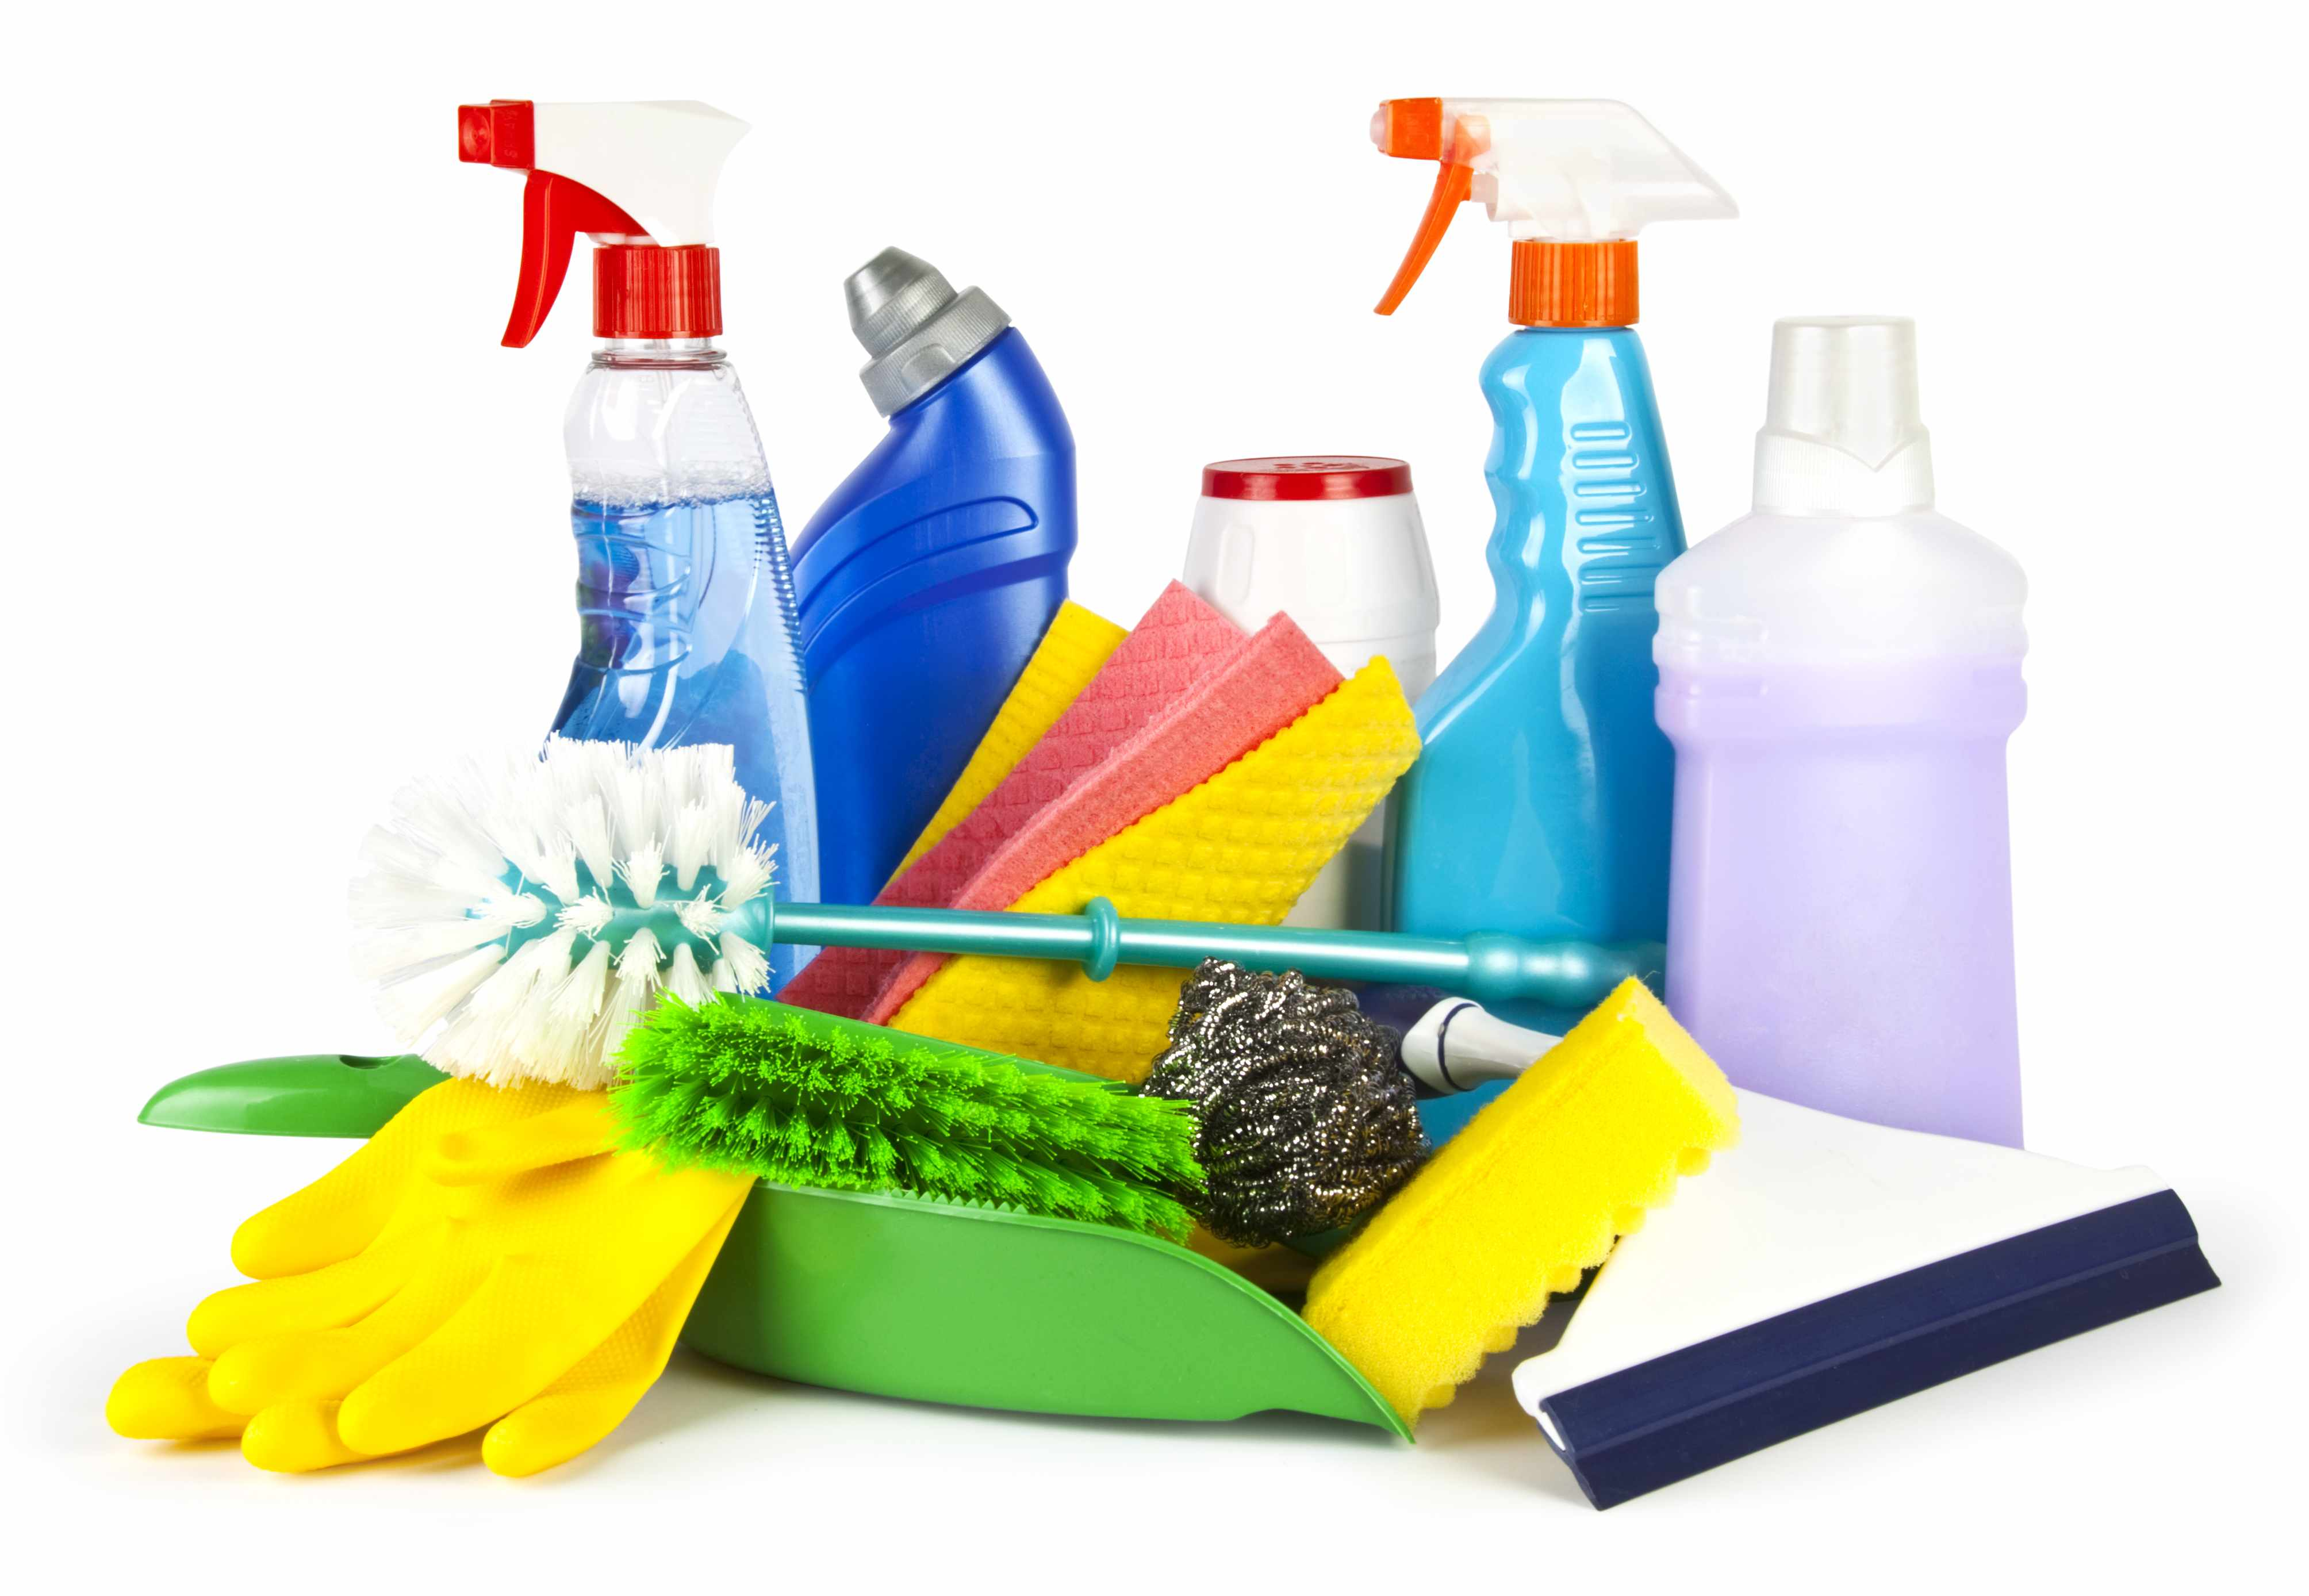 cleaning-services-and-supplies-business-for-sale-70-000-2